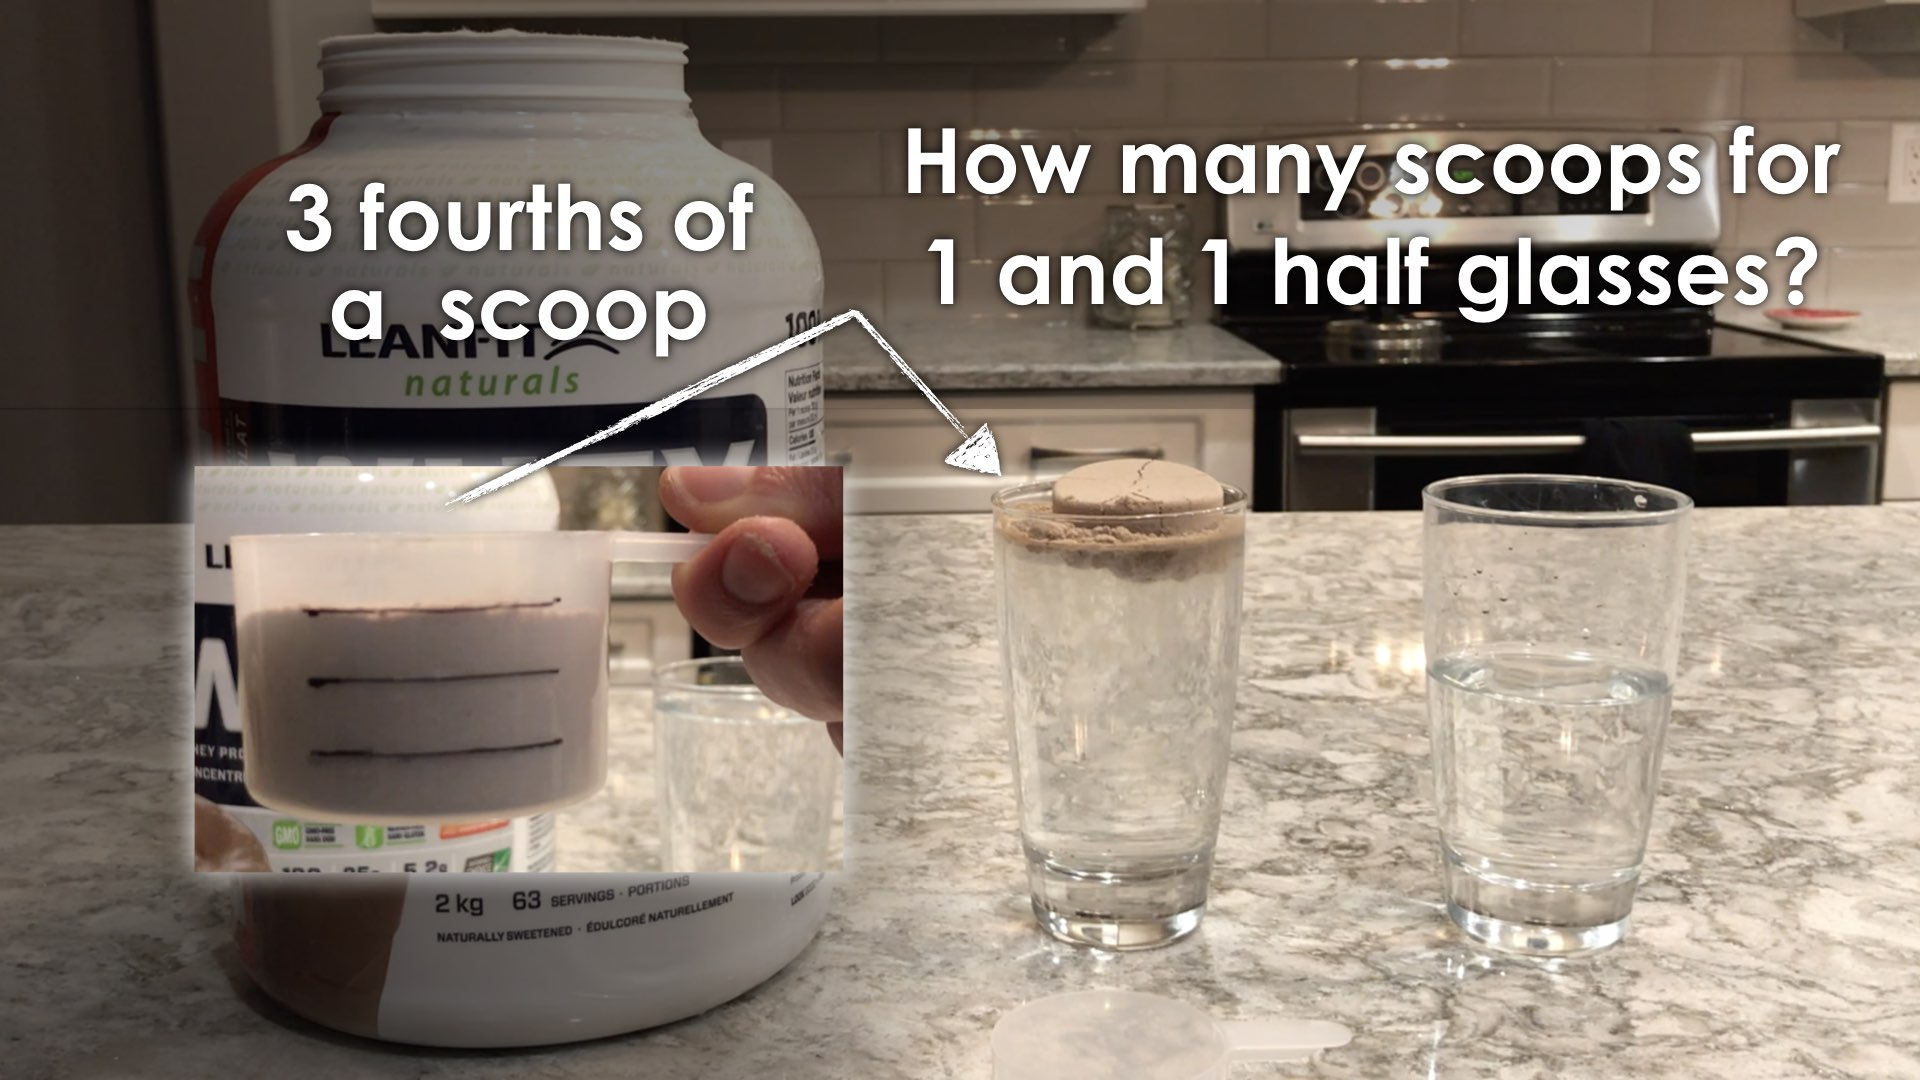 Protein Shakes 3 Act Math Task Extend 1 - Spark